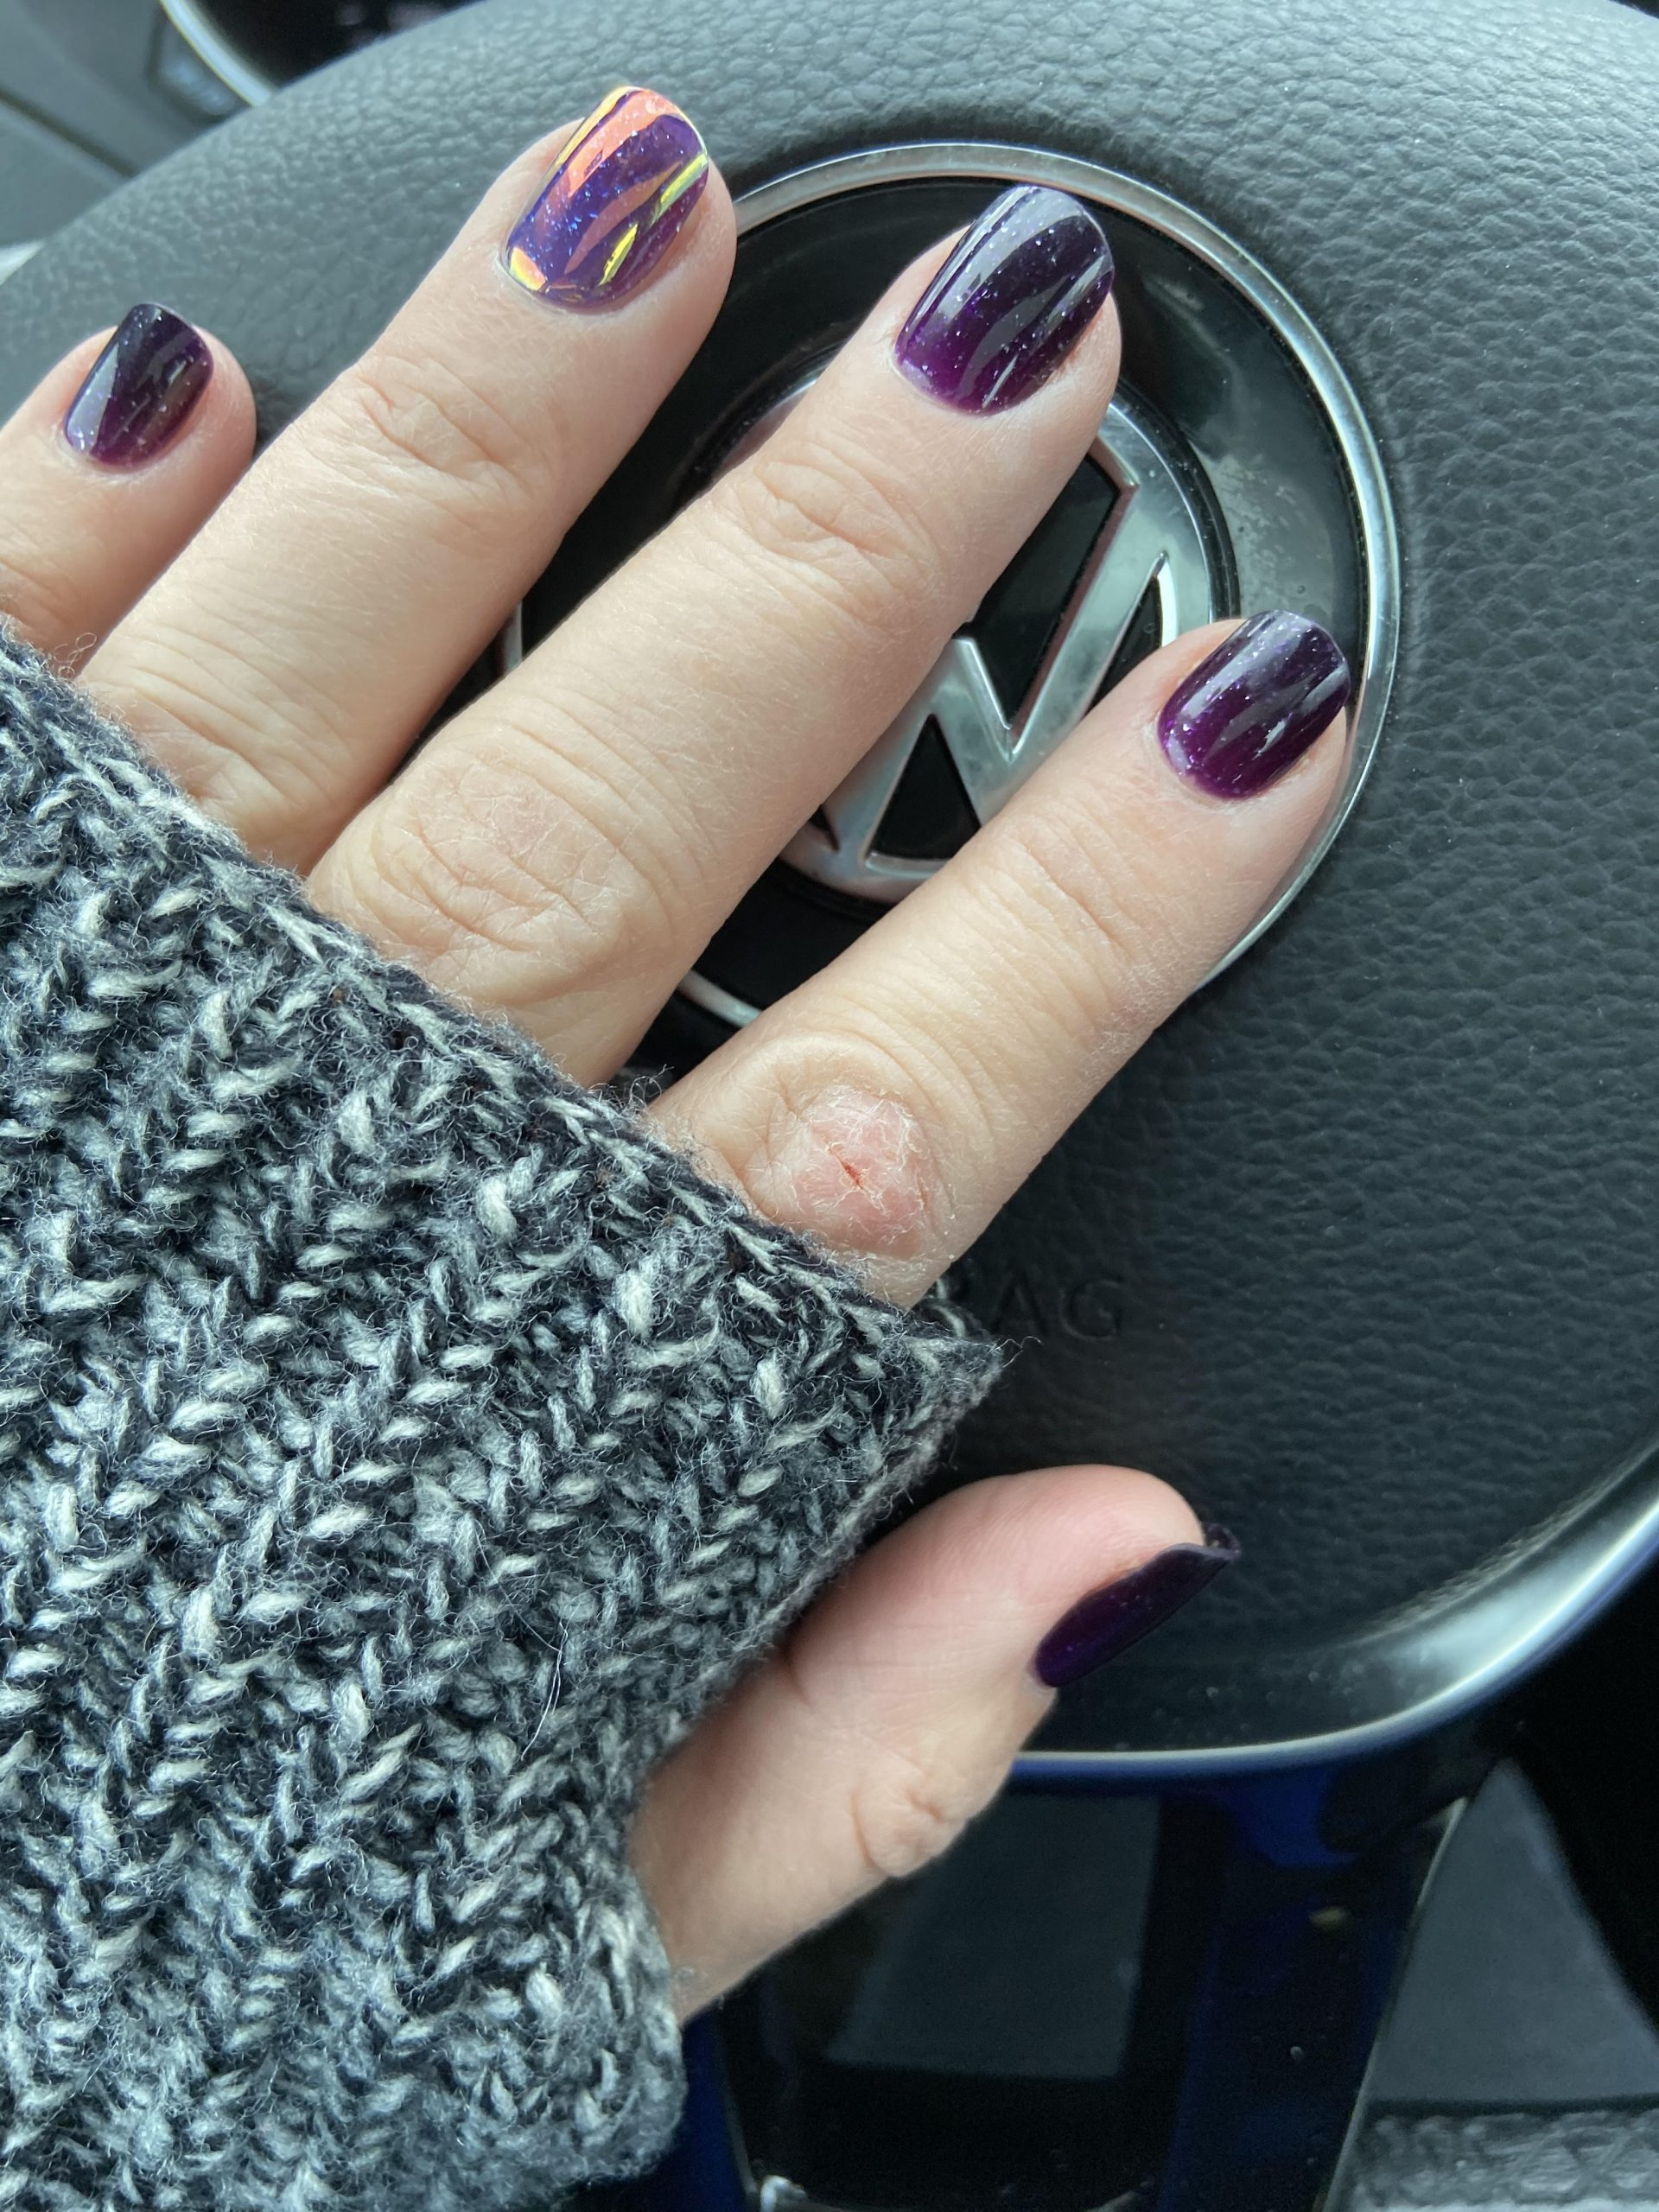 5 Minute Nails. By Binks